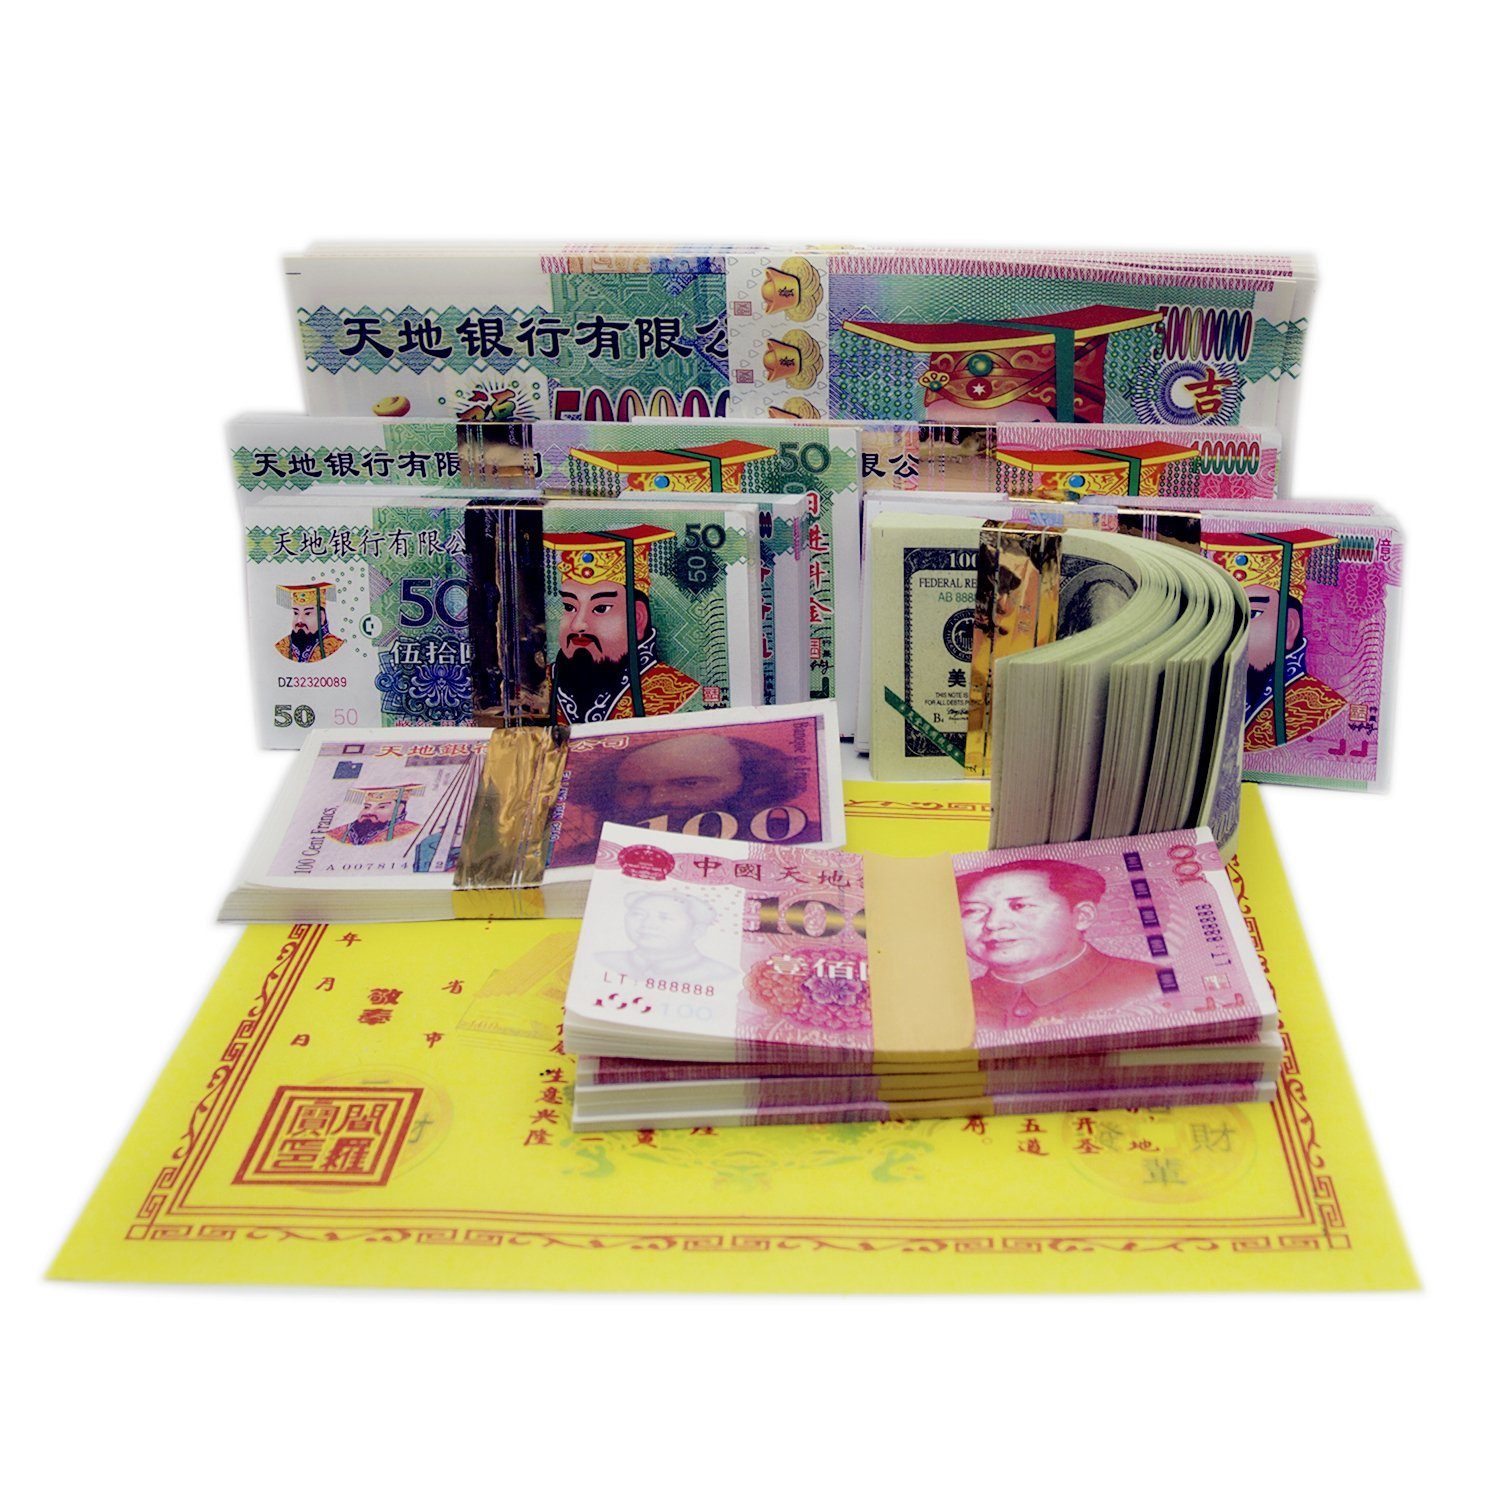 400 Pcs Ancestor Money for Tomb-Sweeping Day Joss Paper For Funeral, Strengthen Connection with Your Ancestors, Bring The Good Luck Wealth and Health by CONHENCI